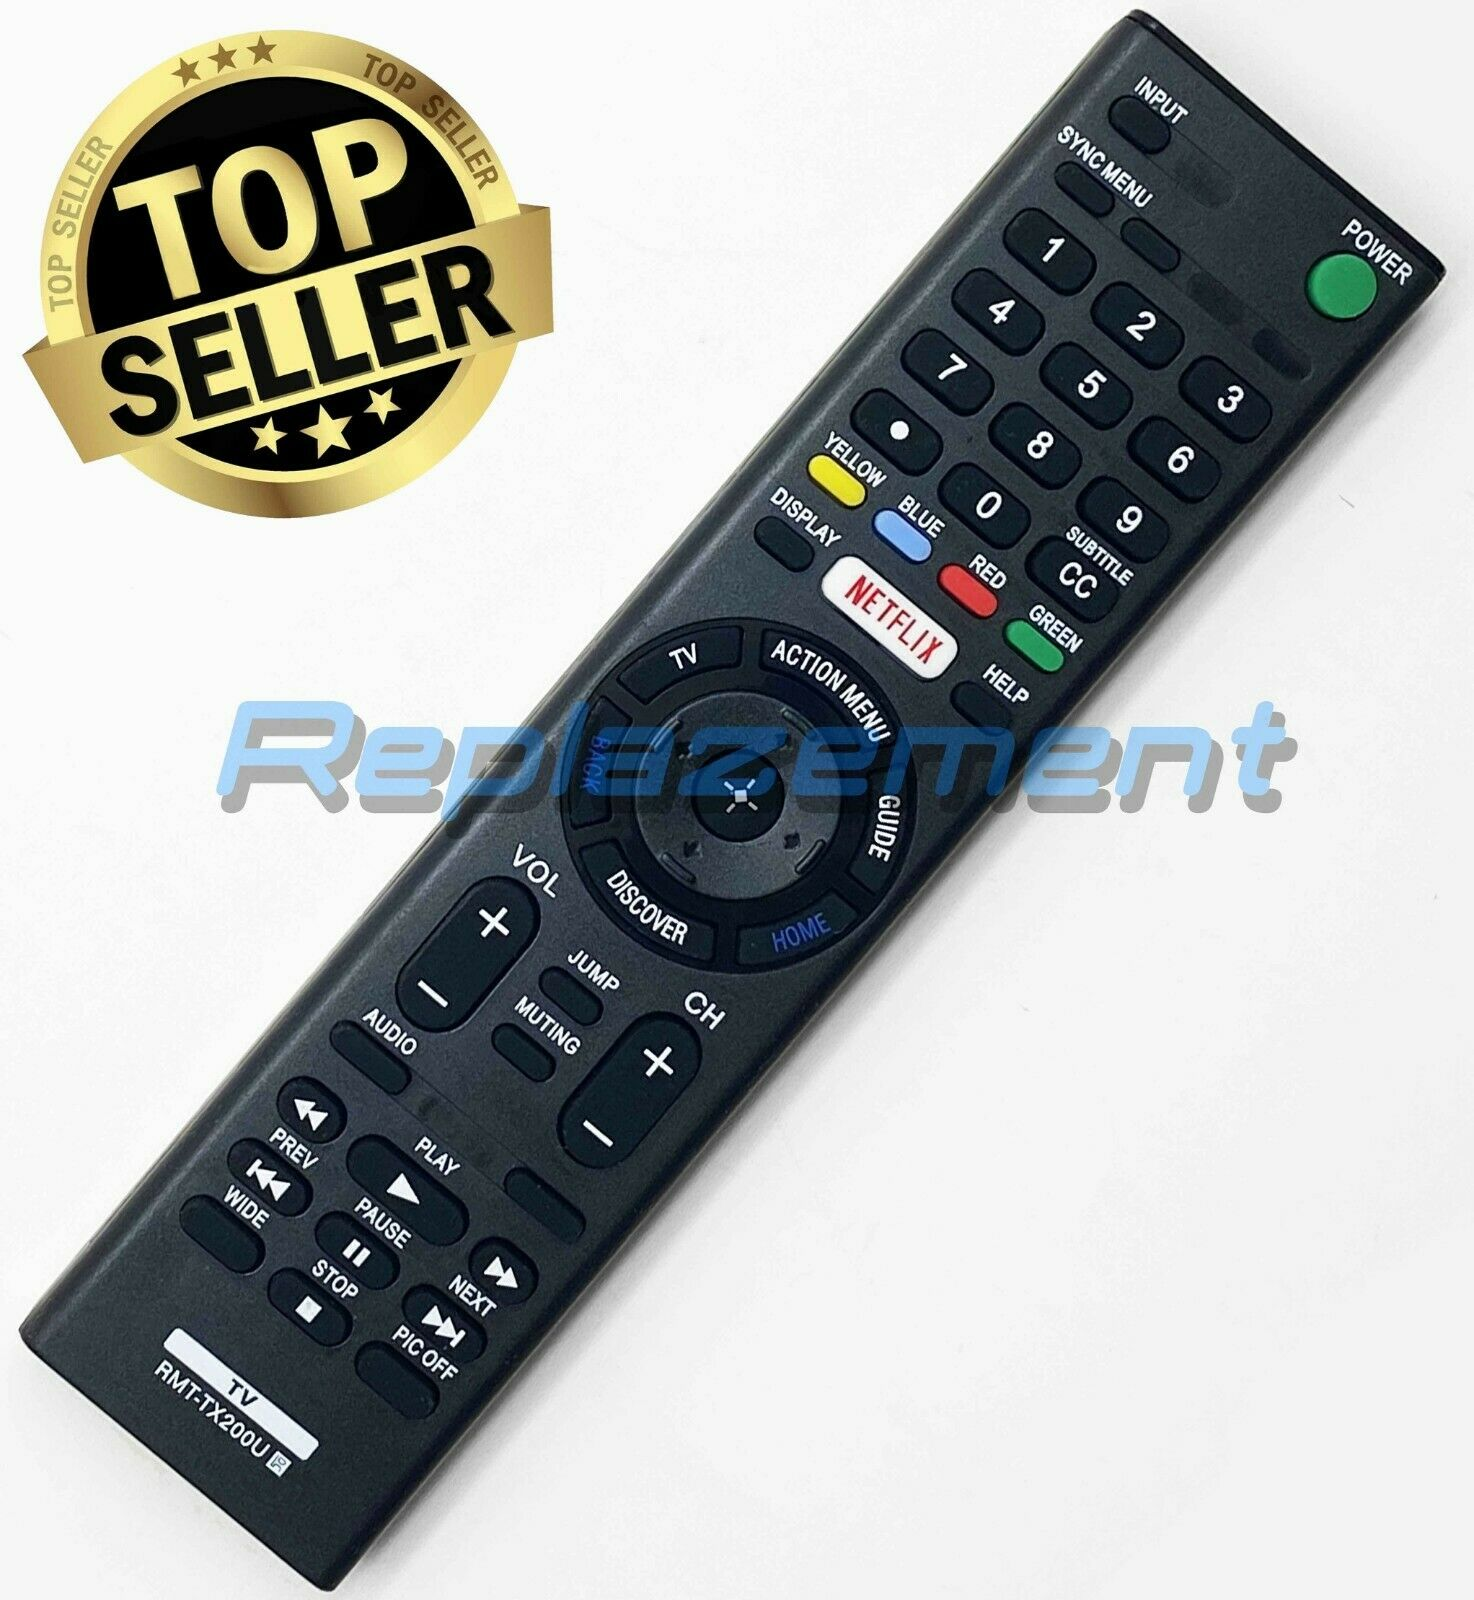 Original SONY RMT-CX200iP Replacement Remote Control for RDP-X200IP